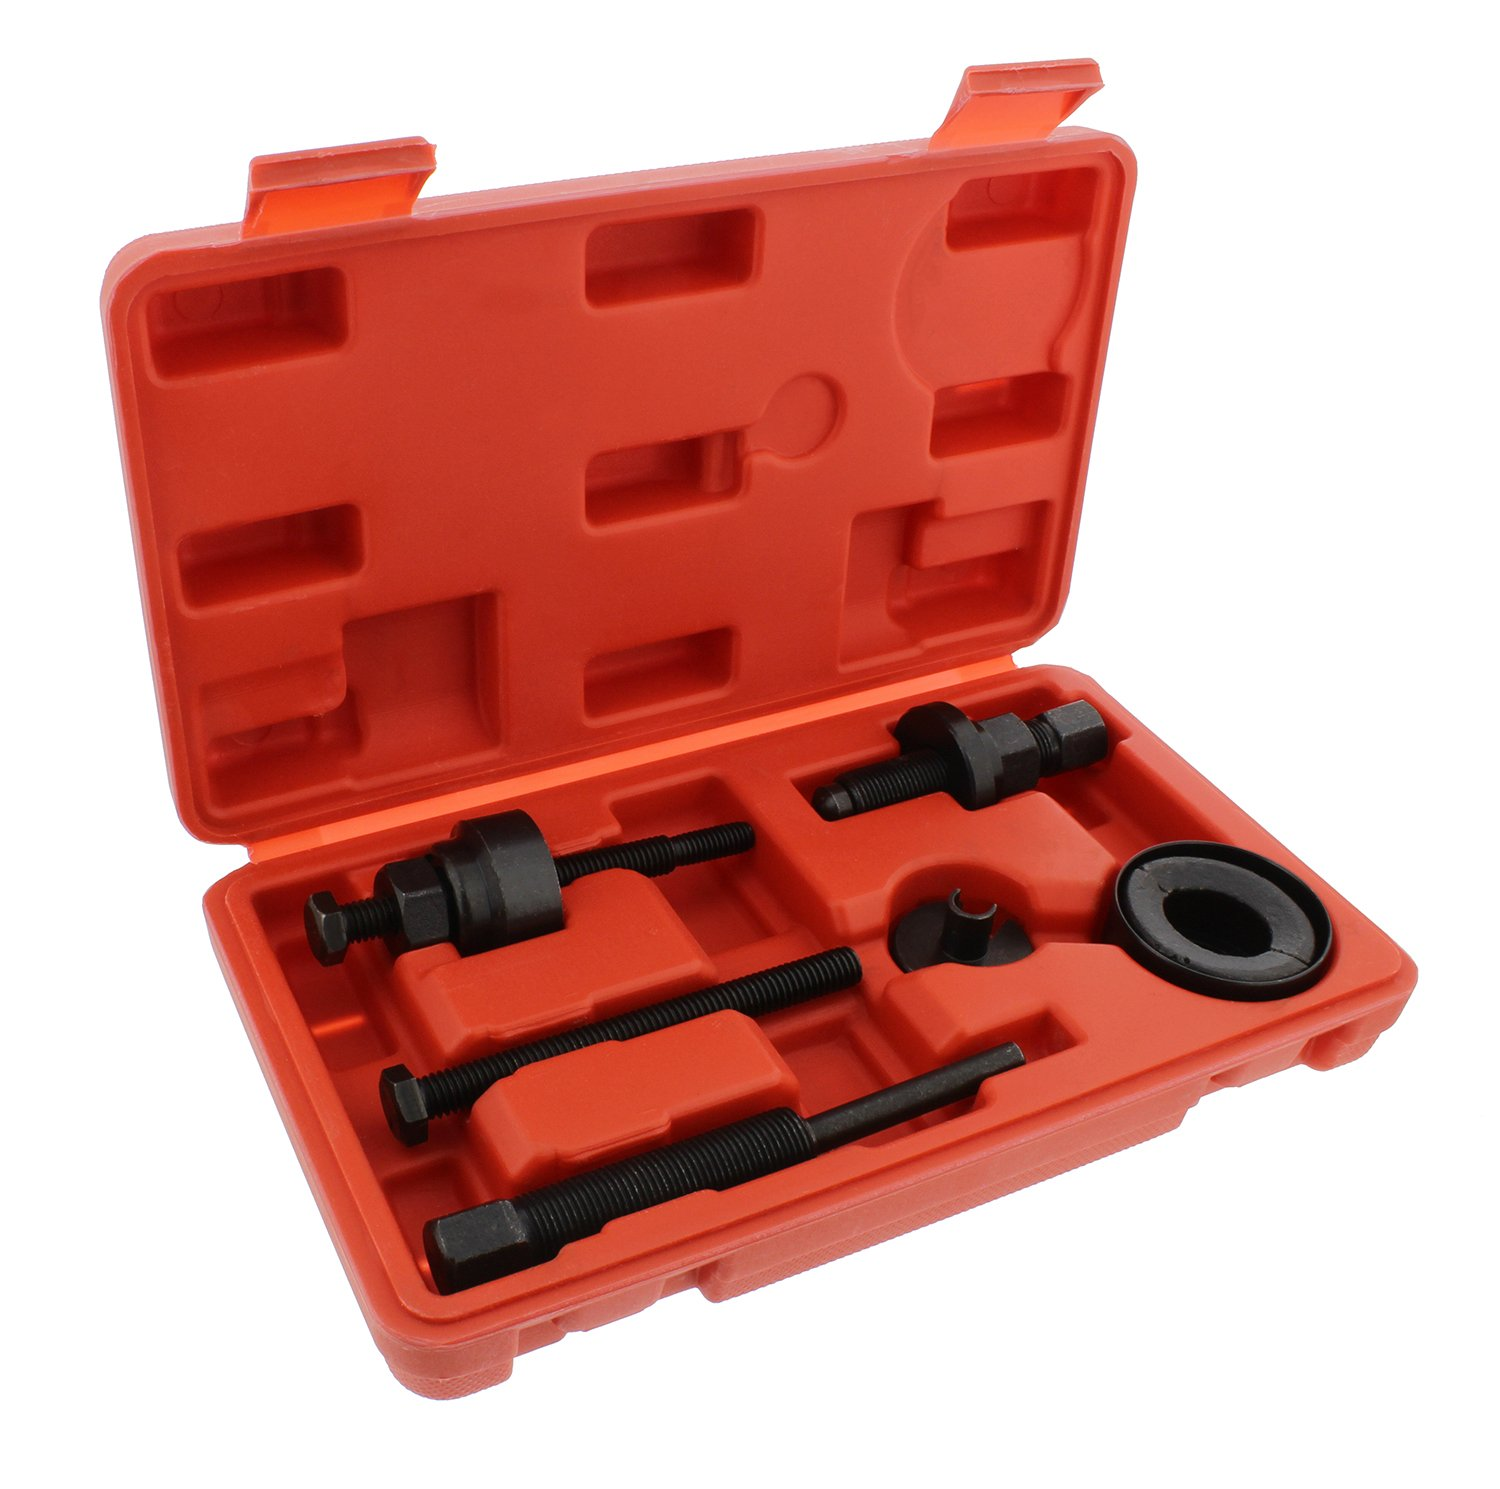 ABN Automotive Power Steering Pump Pulley Remover Installer Tool Kit – Puller Removal Set for GM, Ford, Chrysler Truck by ABN (Image #1)